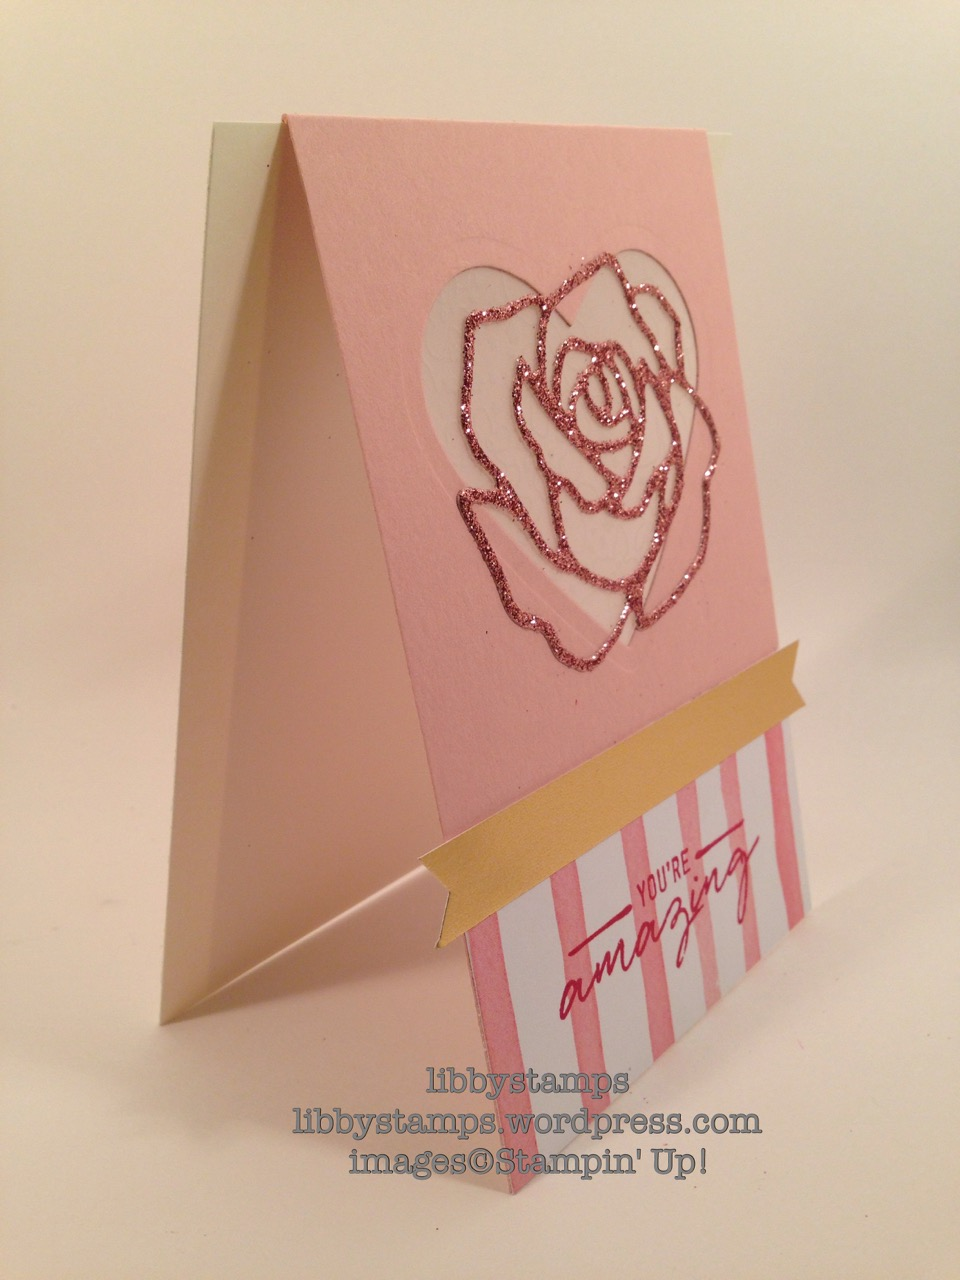 libbystamps, stampin up, Watercooler Wishes Card Kit, Rose Garden Thinlits, Hearts Collection Framelits, Banner Triple Punch, Blushing Bride Glimmer Paper, Birthday Bouquet DSP, Botanical Gardens Vellum, Fold Over Card